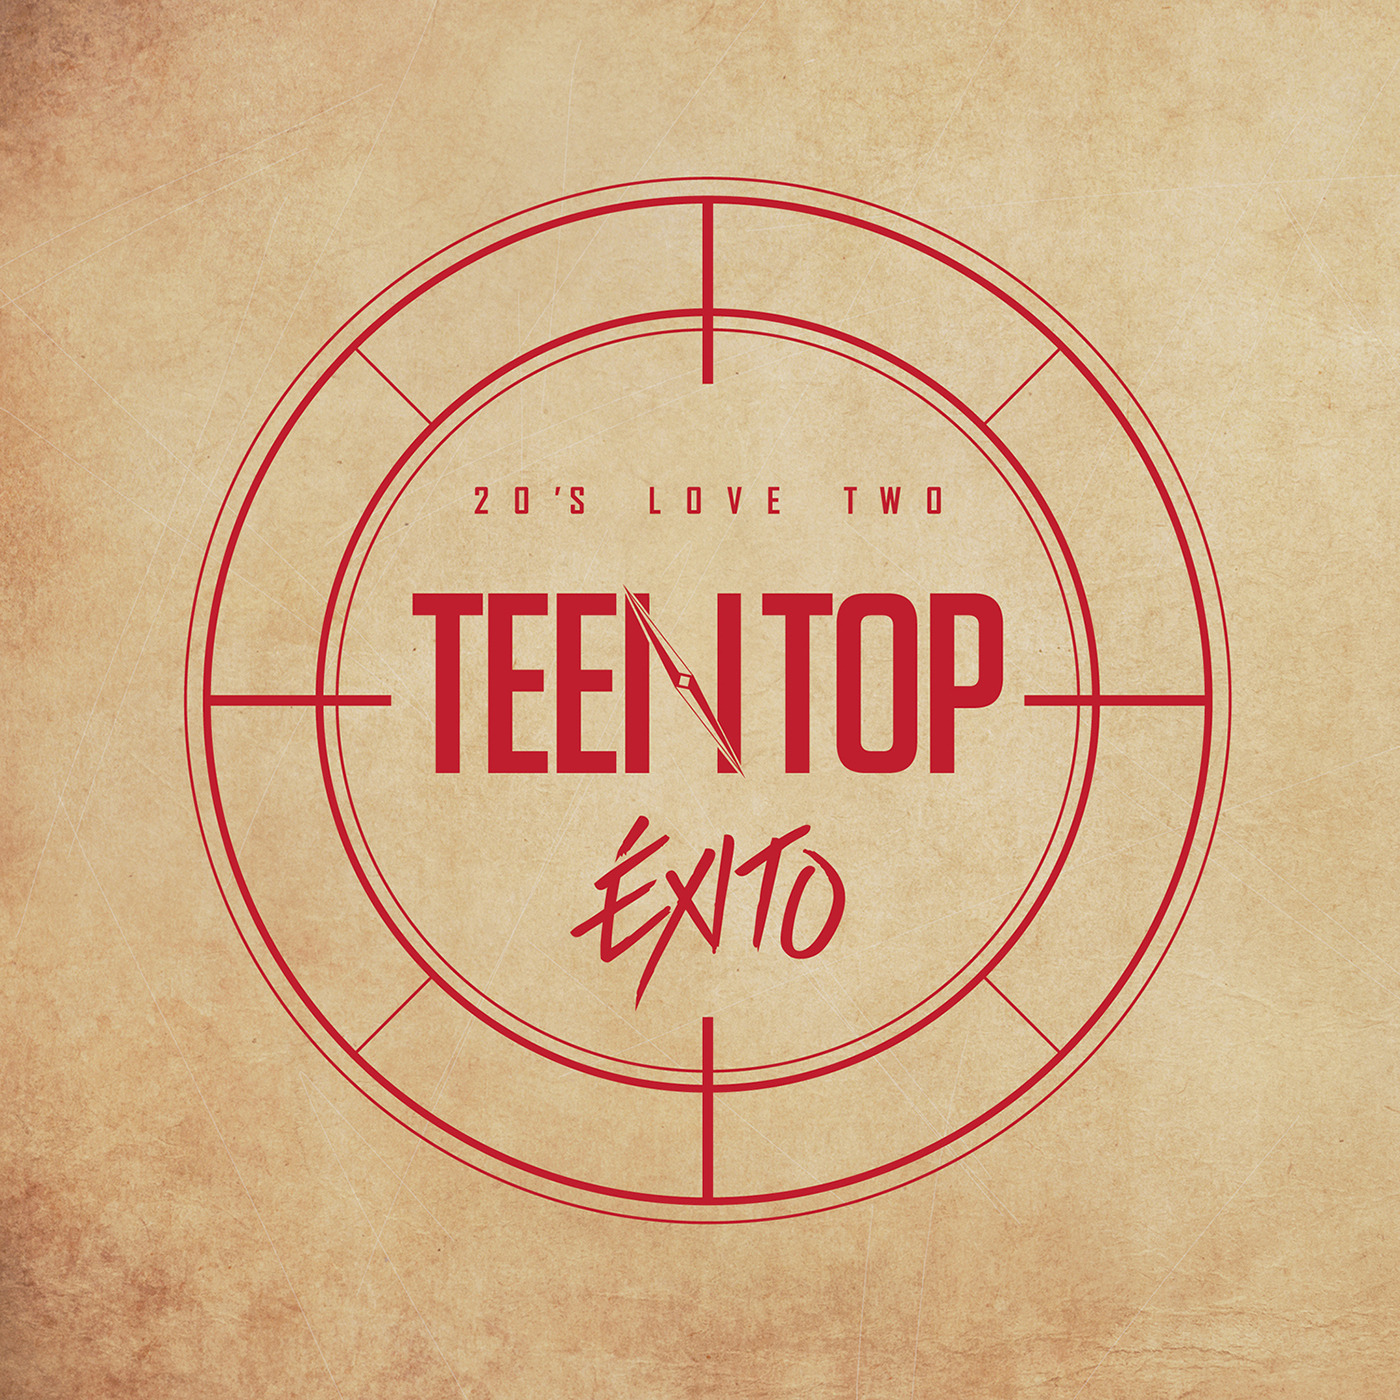 "Teen Top 20's Love Two ""Exito"" - Teen Top (틴 탑)"